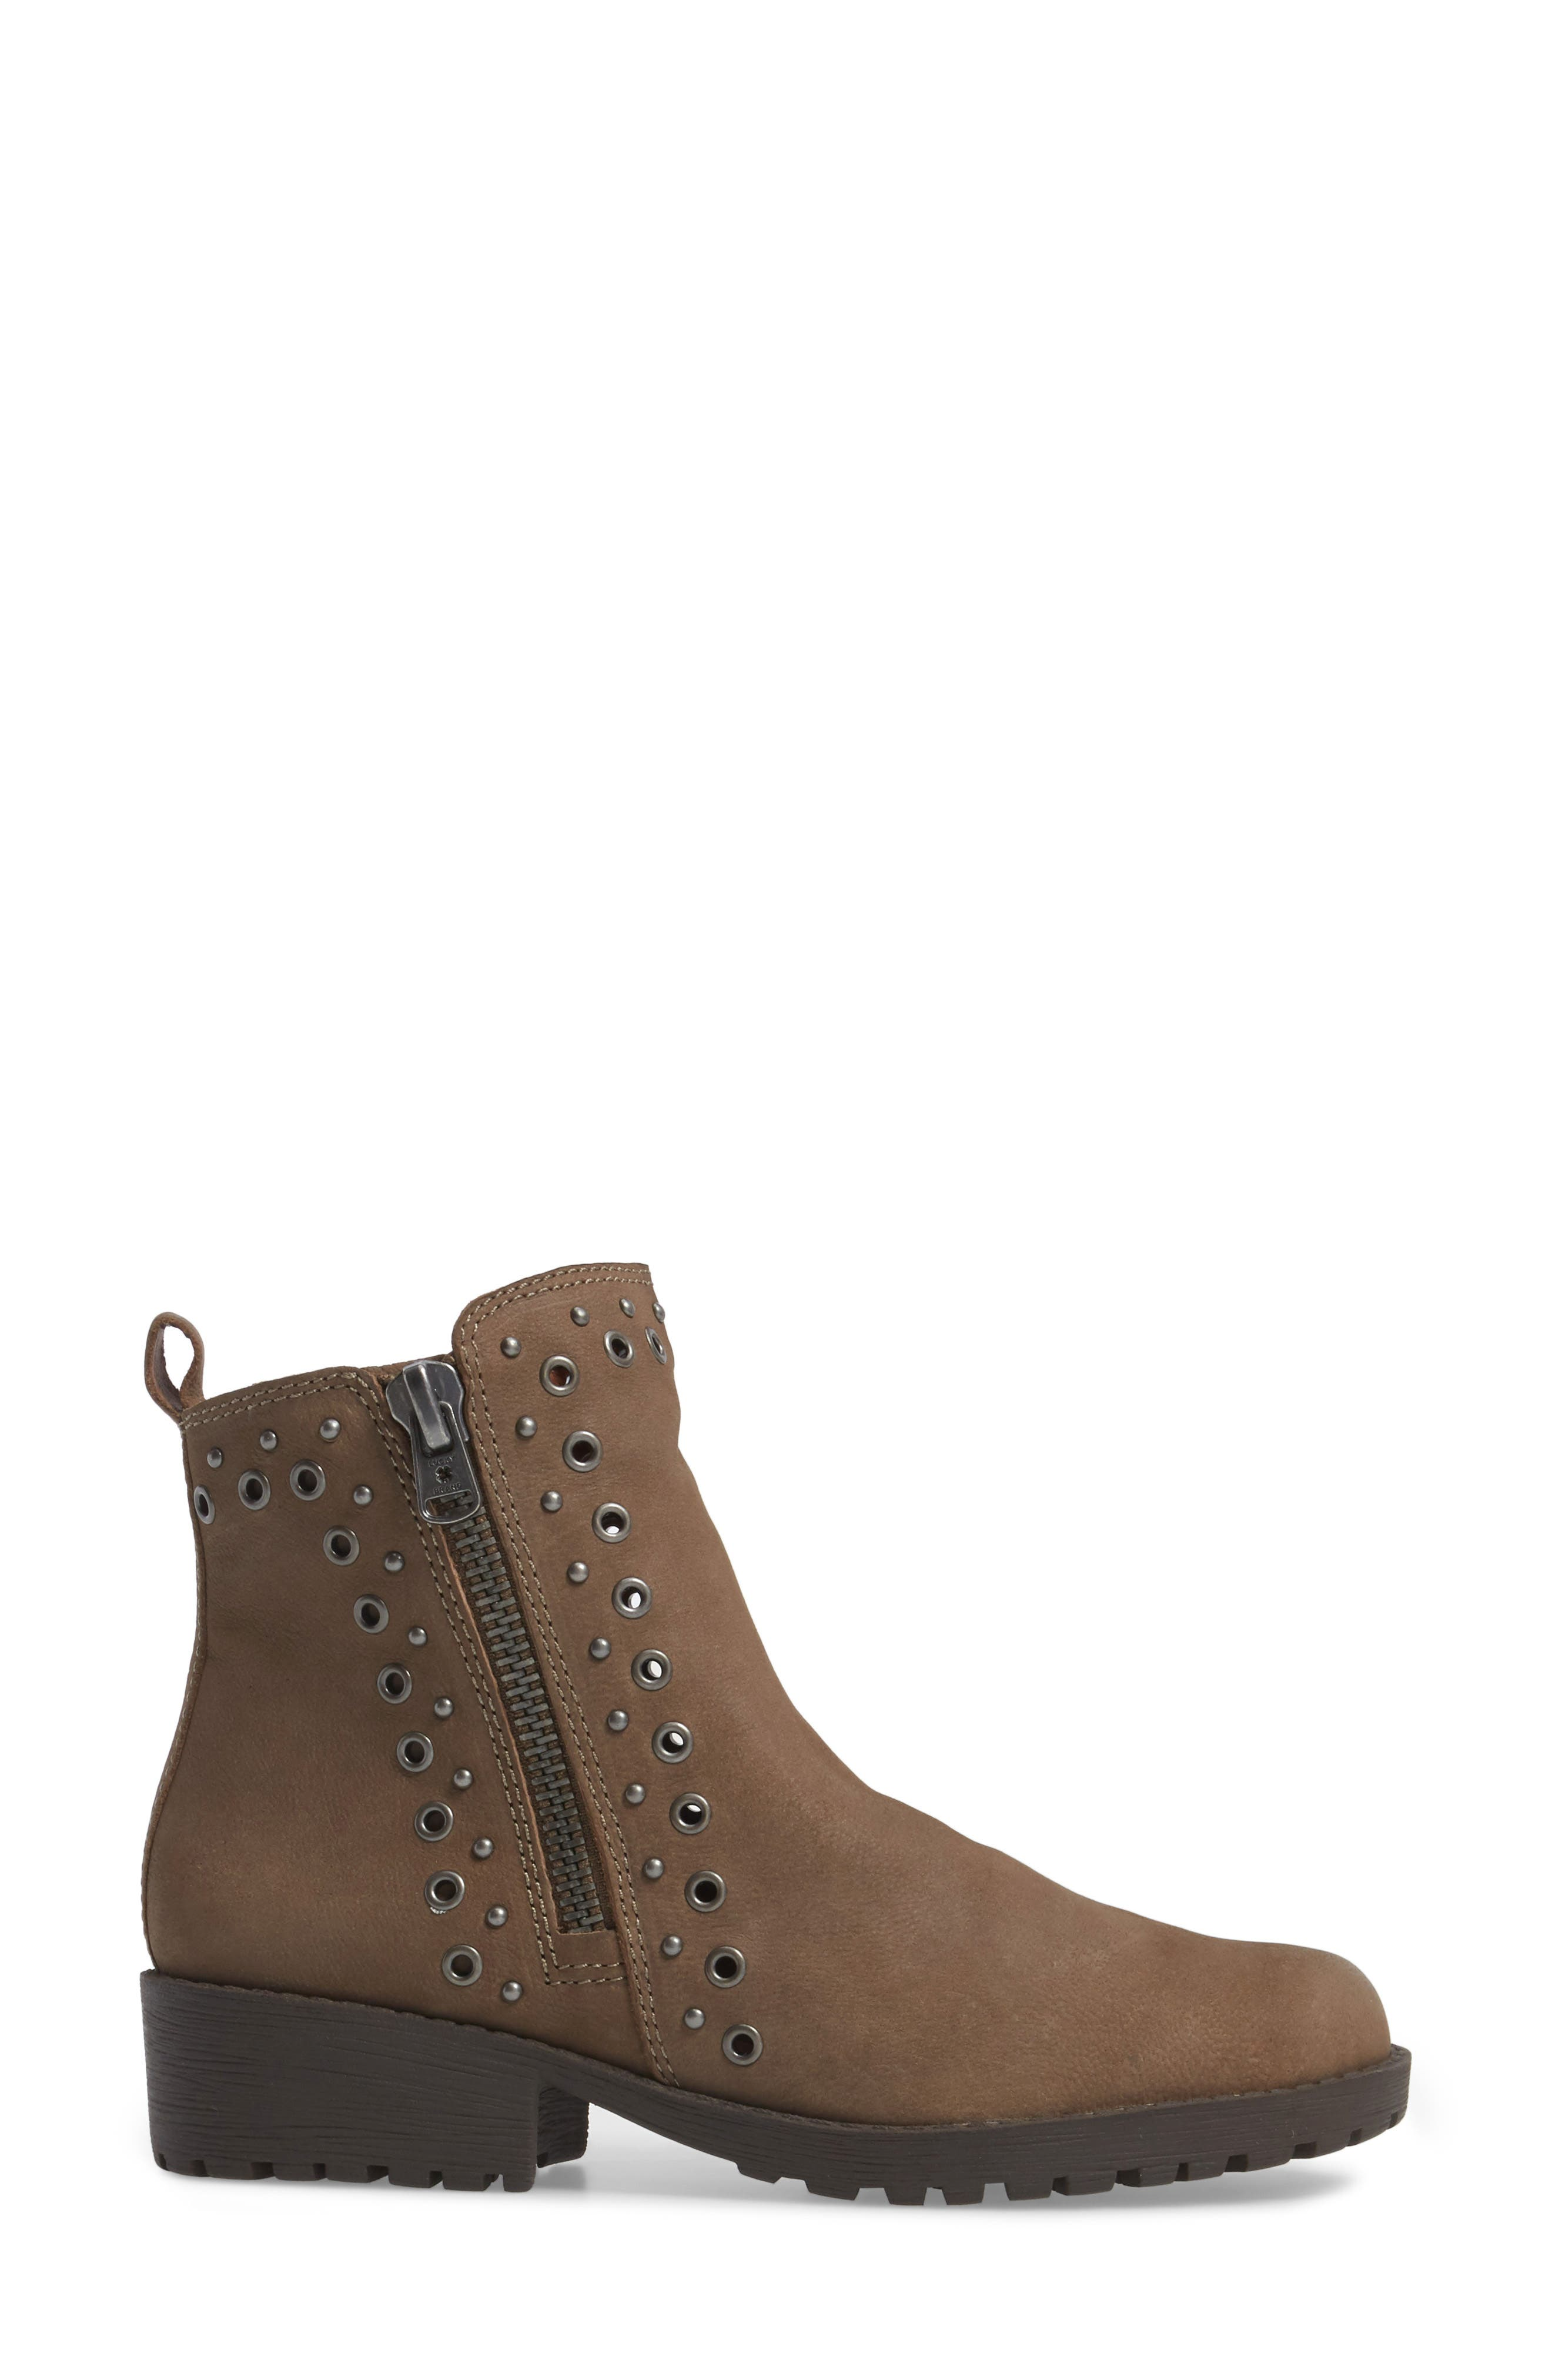 Hannie Embellished Bootie,                             Alternate thumbnail 3, color,                             Brindle Leather